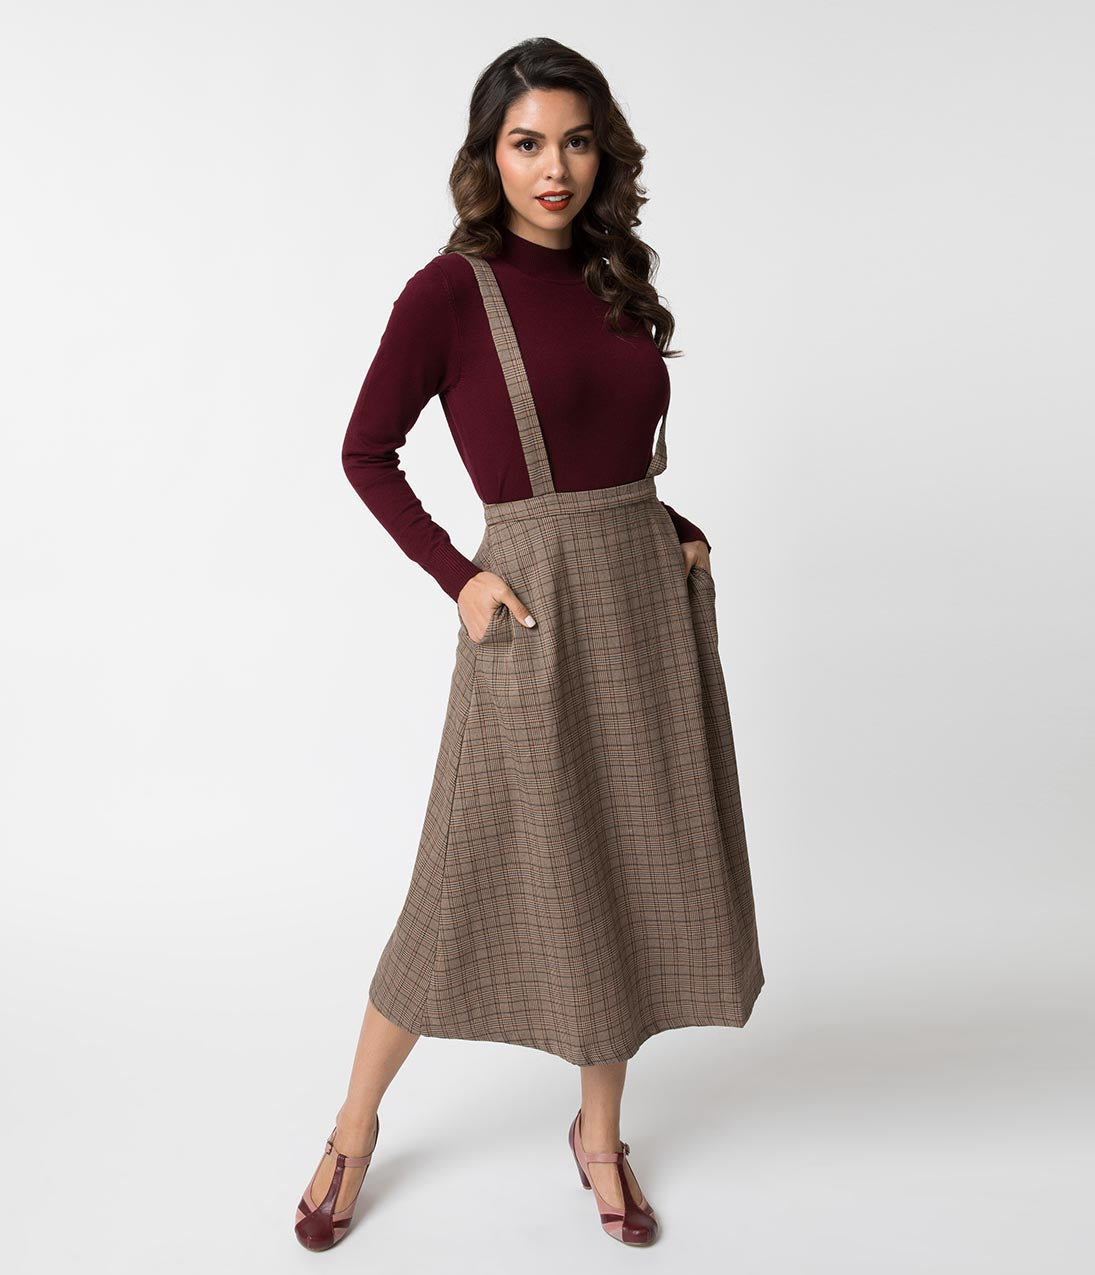 1950s Swing Skirt, Poodle Skirt, Pencil Skirts Vintage Style Brown Plaid Woven Suspender Midi Skirt $58.00 AT vintagedancer.com